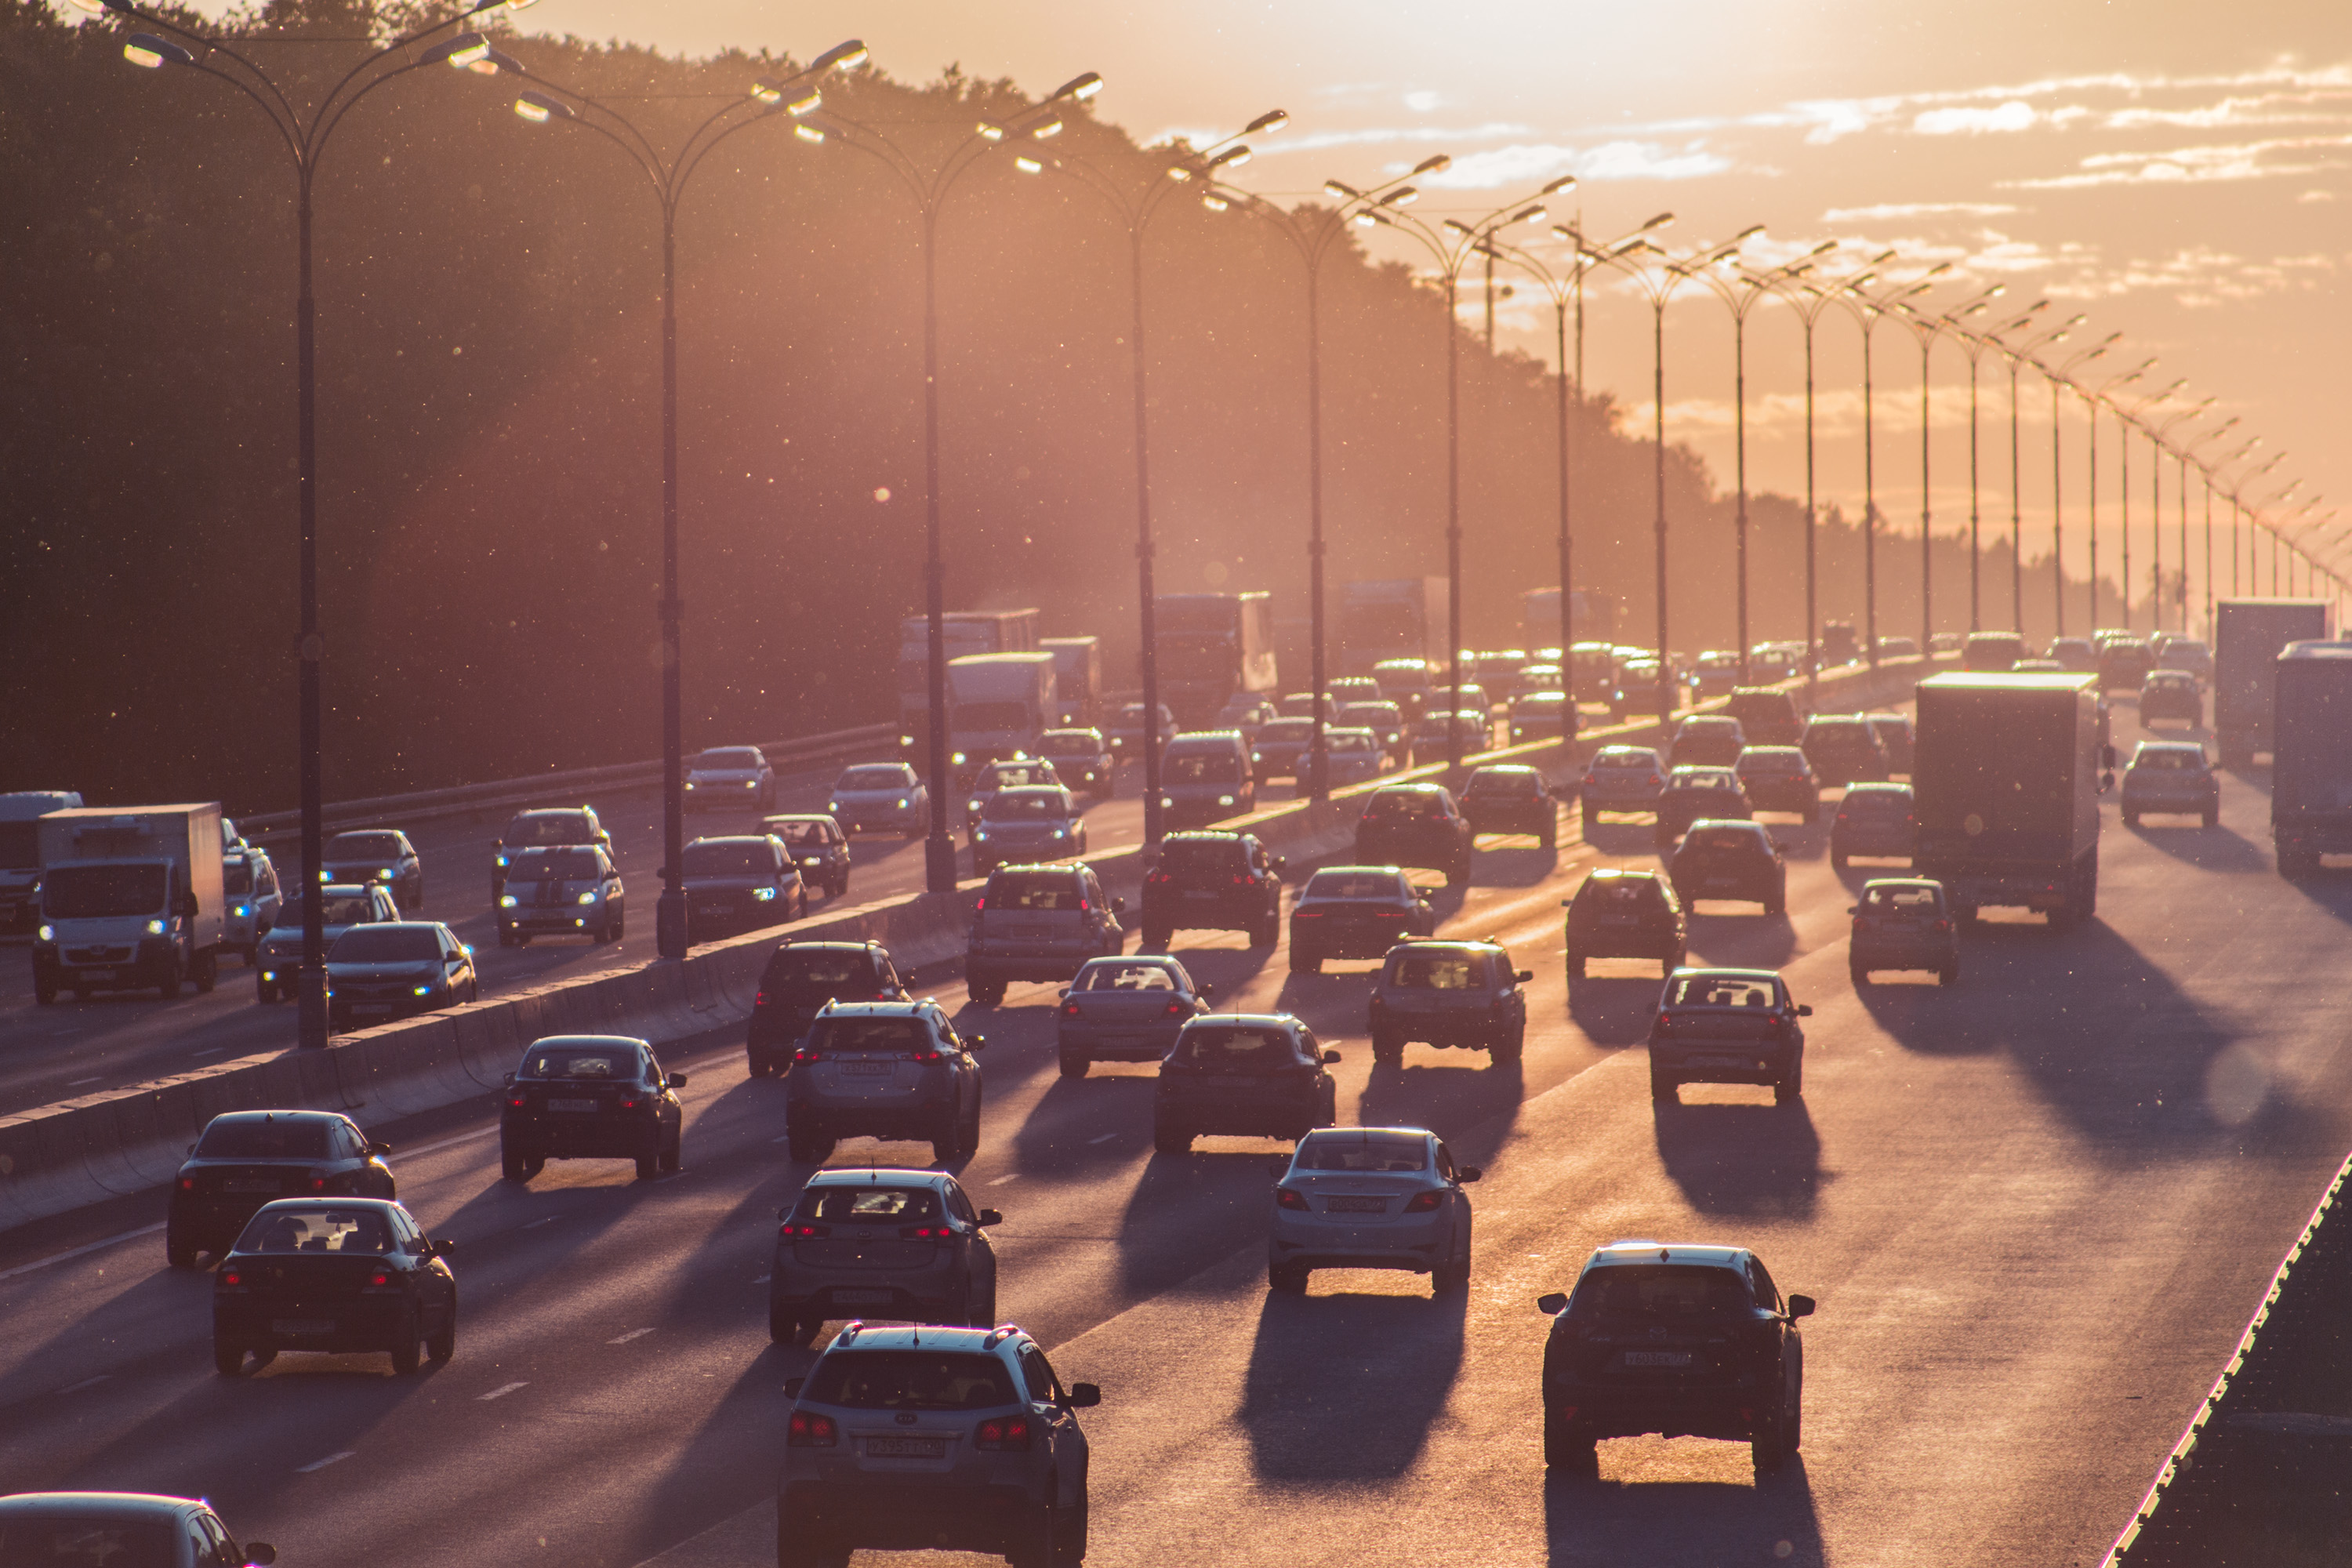 Congested Supply Chains Can Impact Traffic